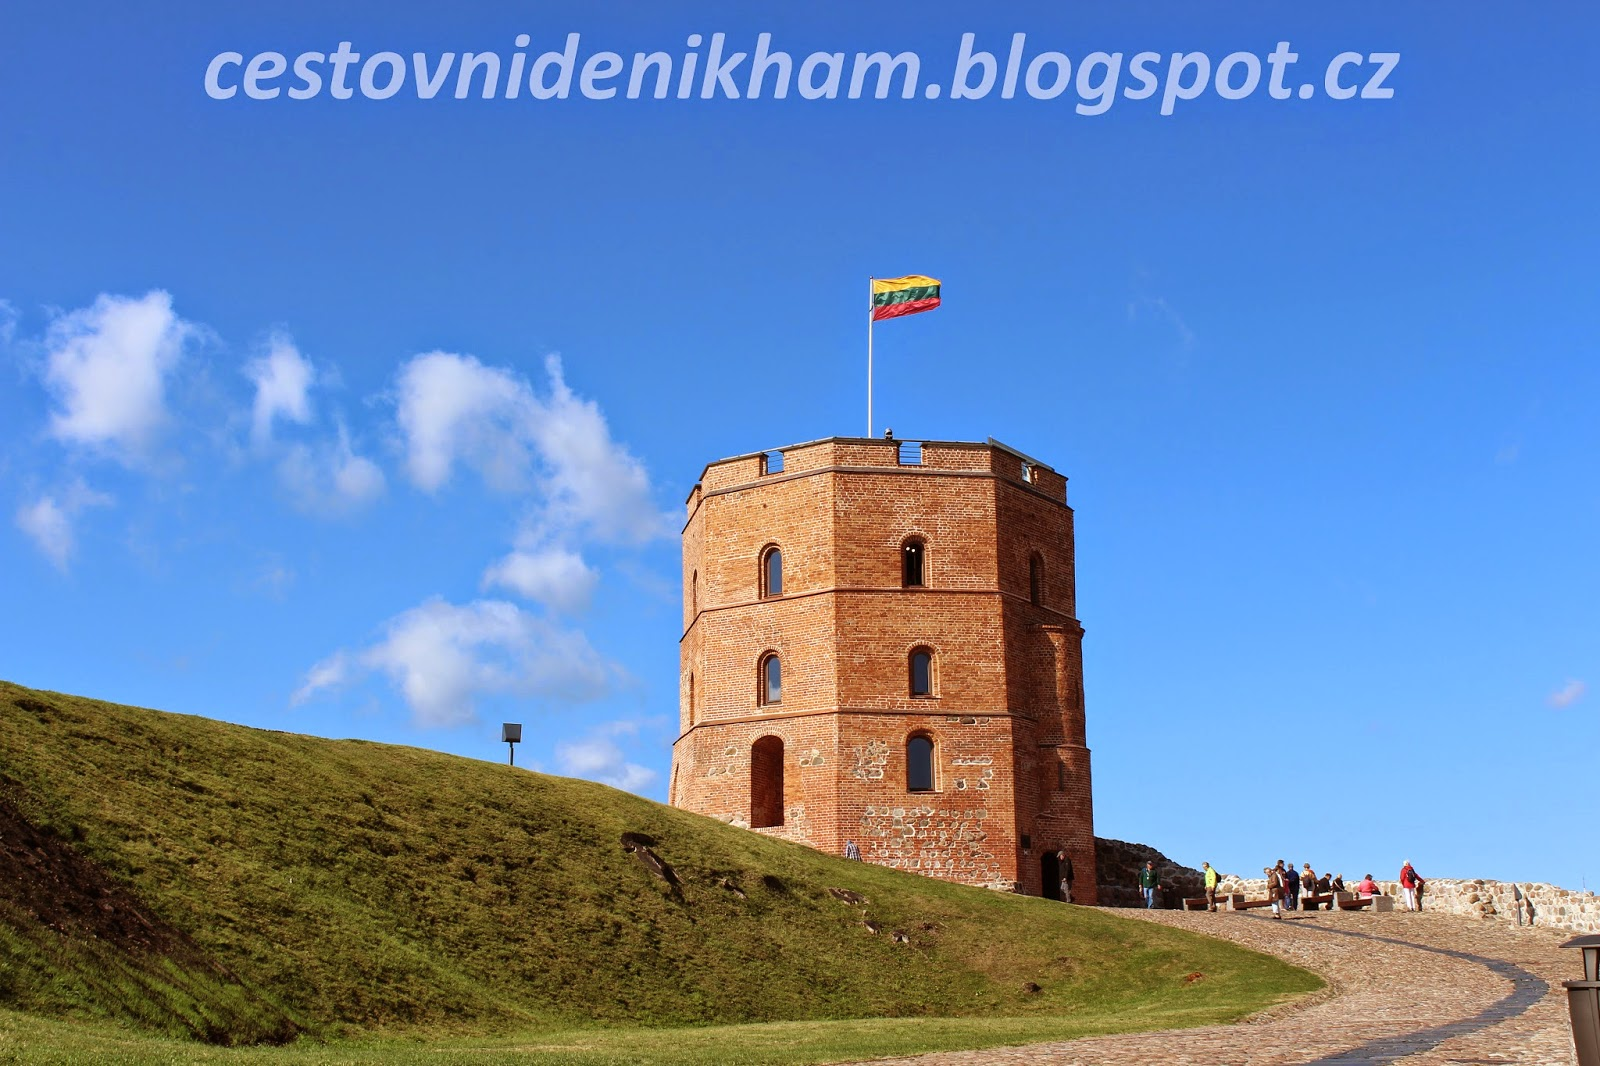 Upper Castle and Gediminas Tower